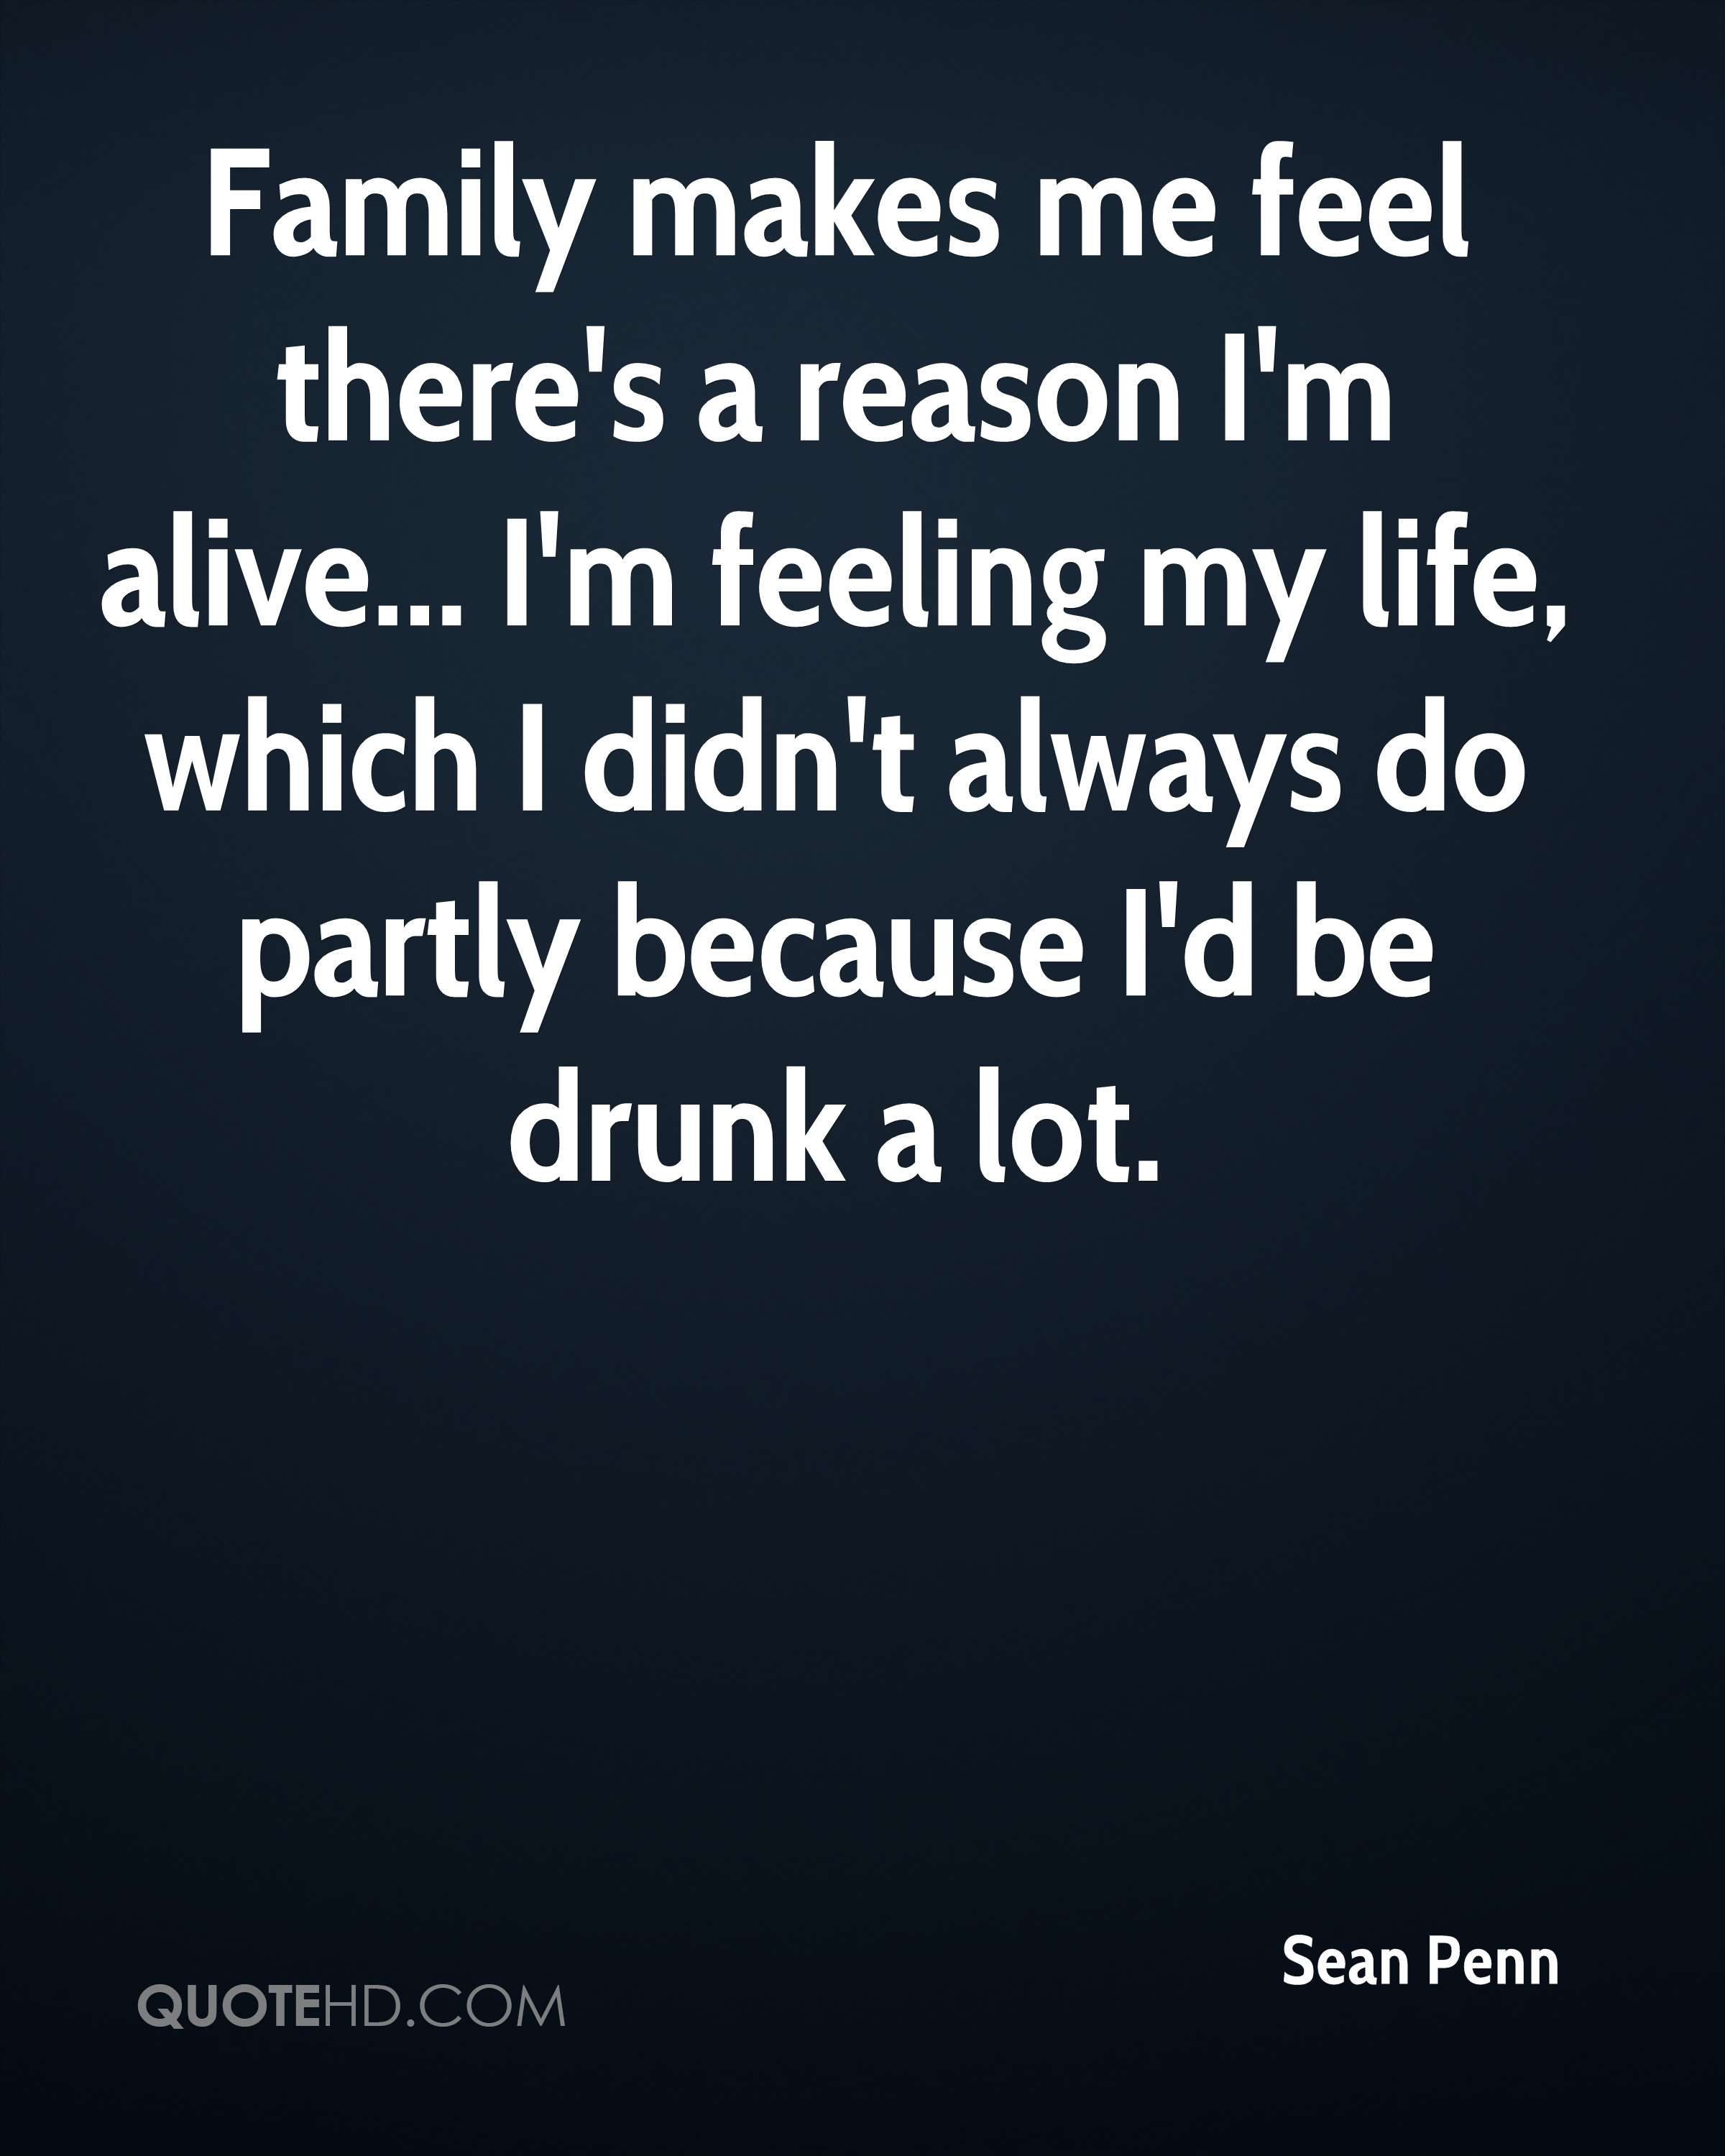 Family makes me feel there's a reason I'm alive... I'm feeling my life, which I didn't always do partly because I'd be drunk a lot.